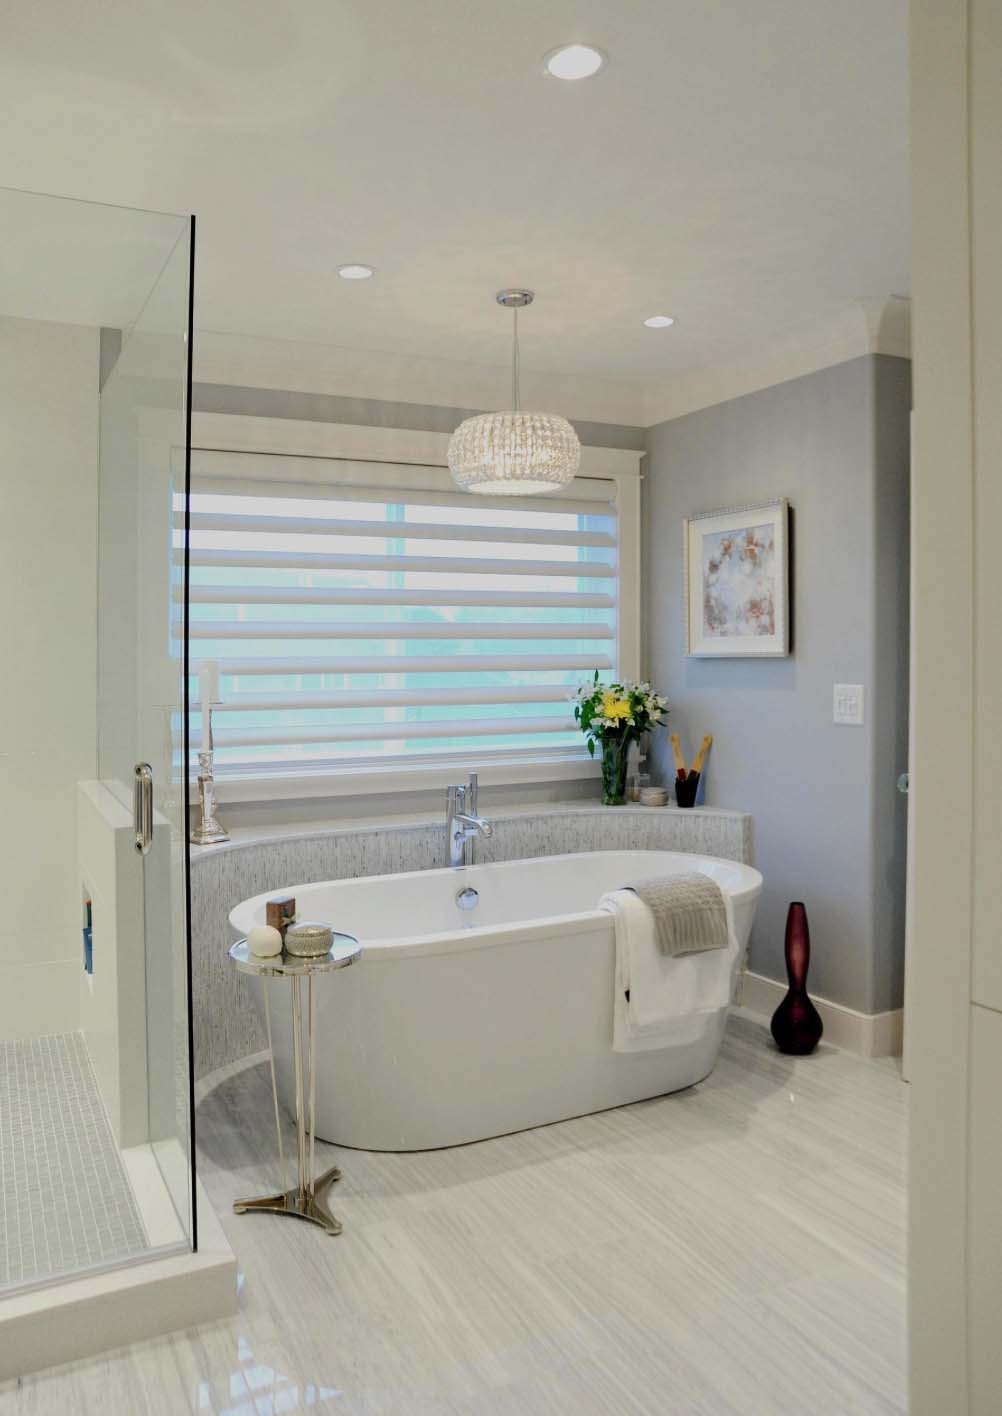 Freestanding-Tubs-Bathroom-Ideas-25-1 Kindesign